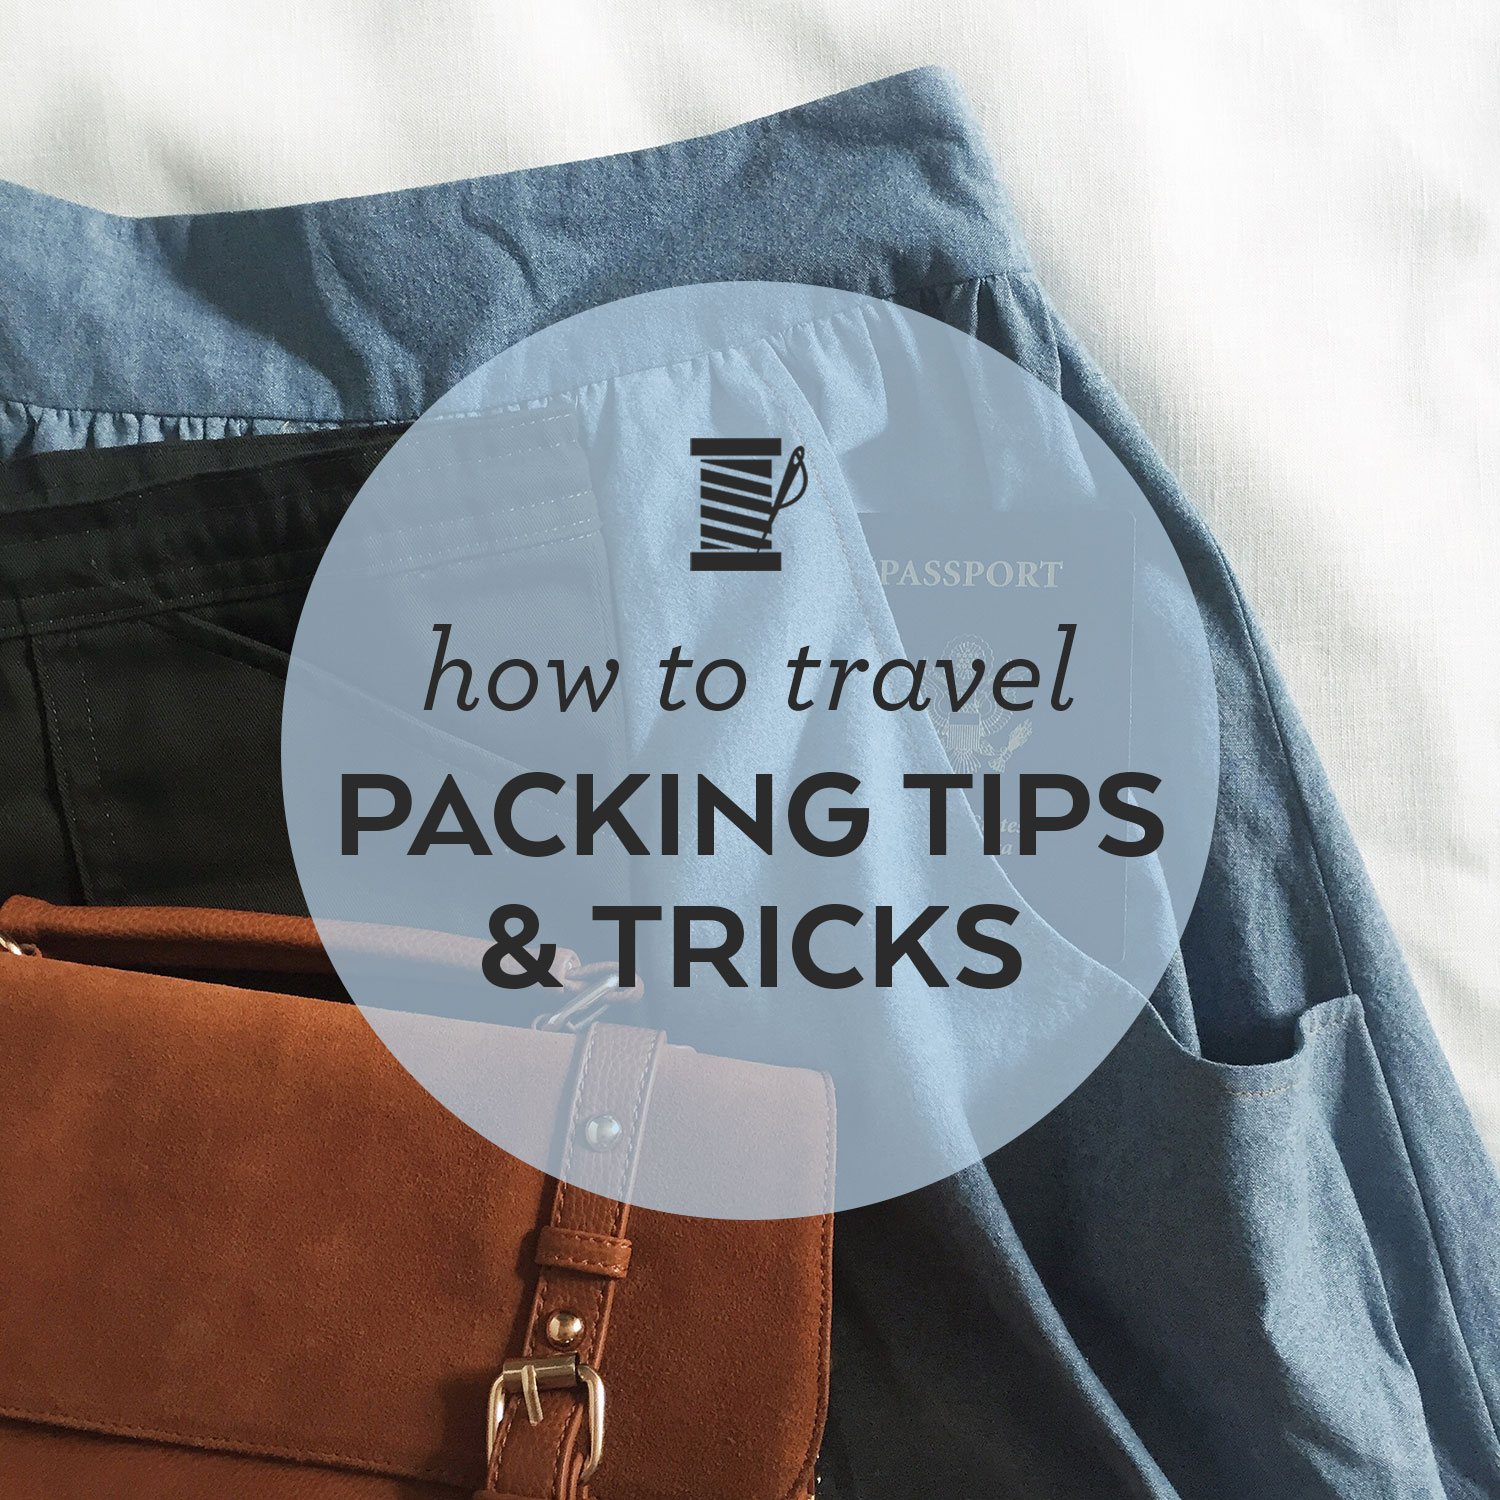 How To Travel Packing Tips and Tricks | Sew DIY